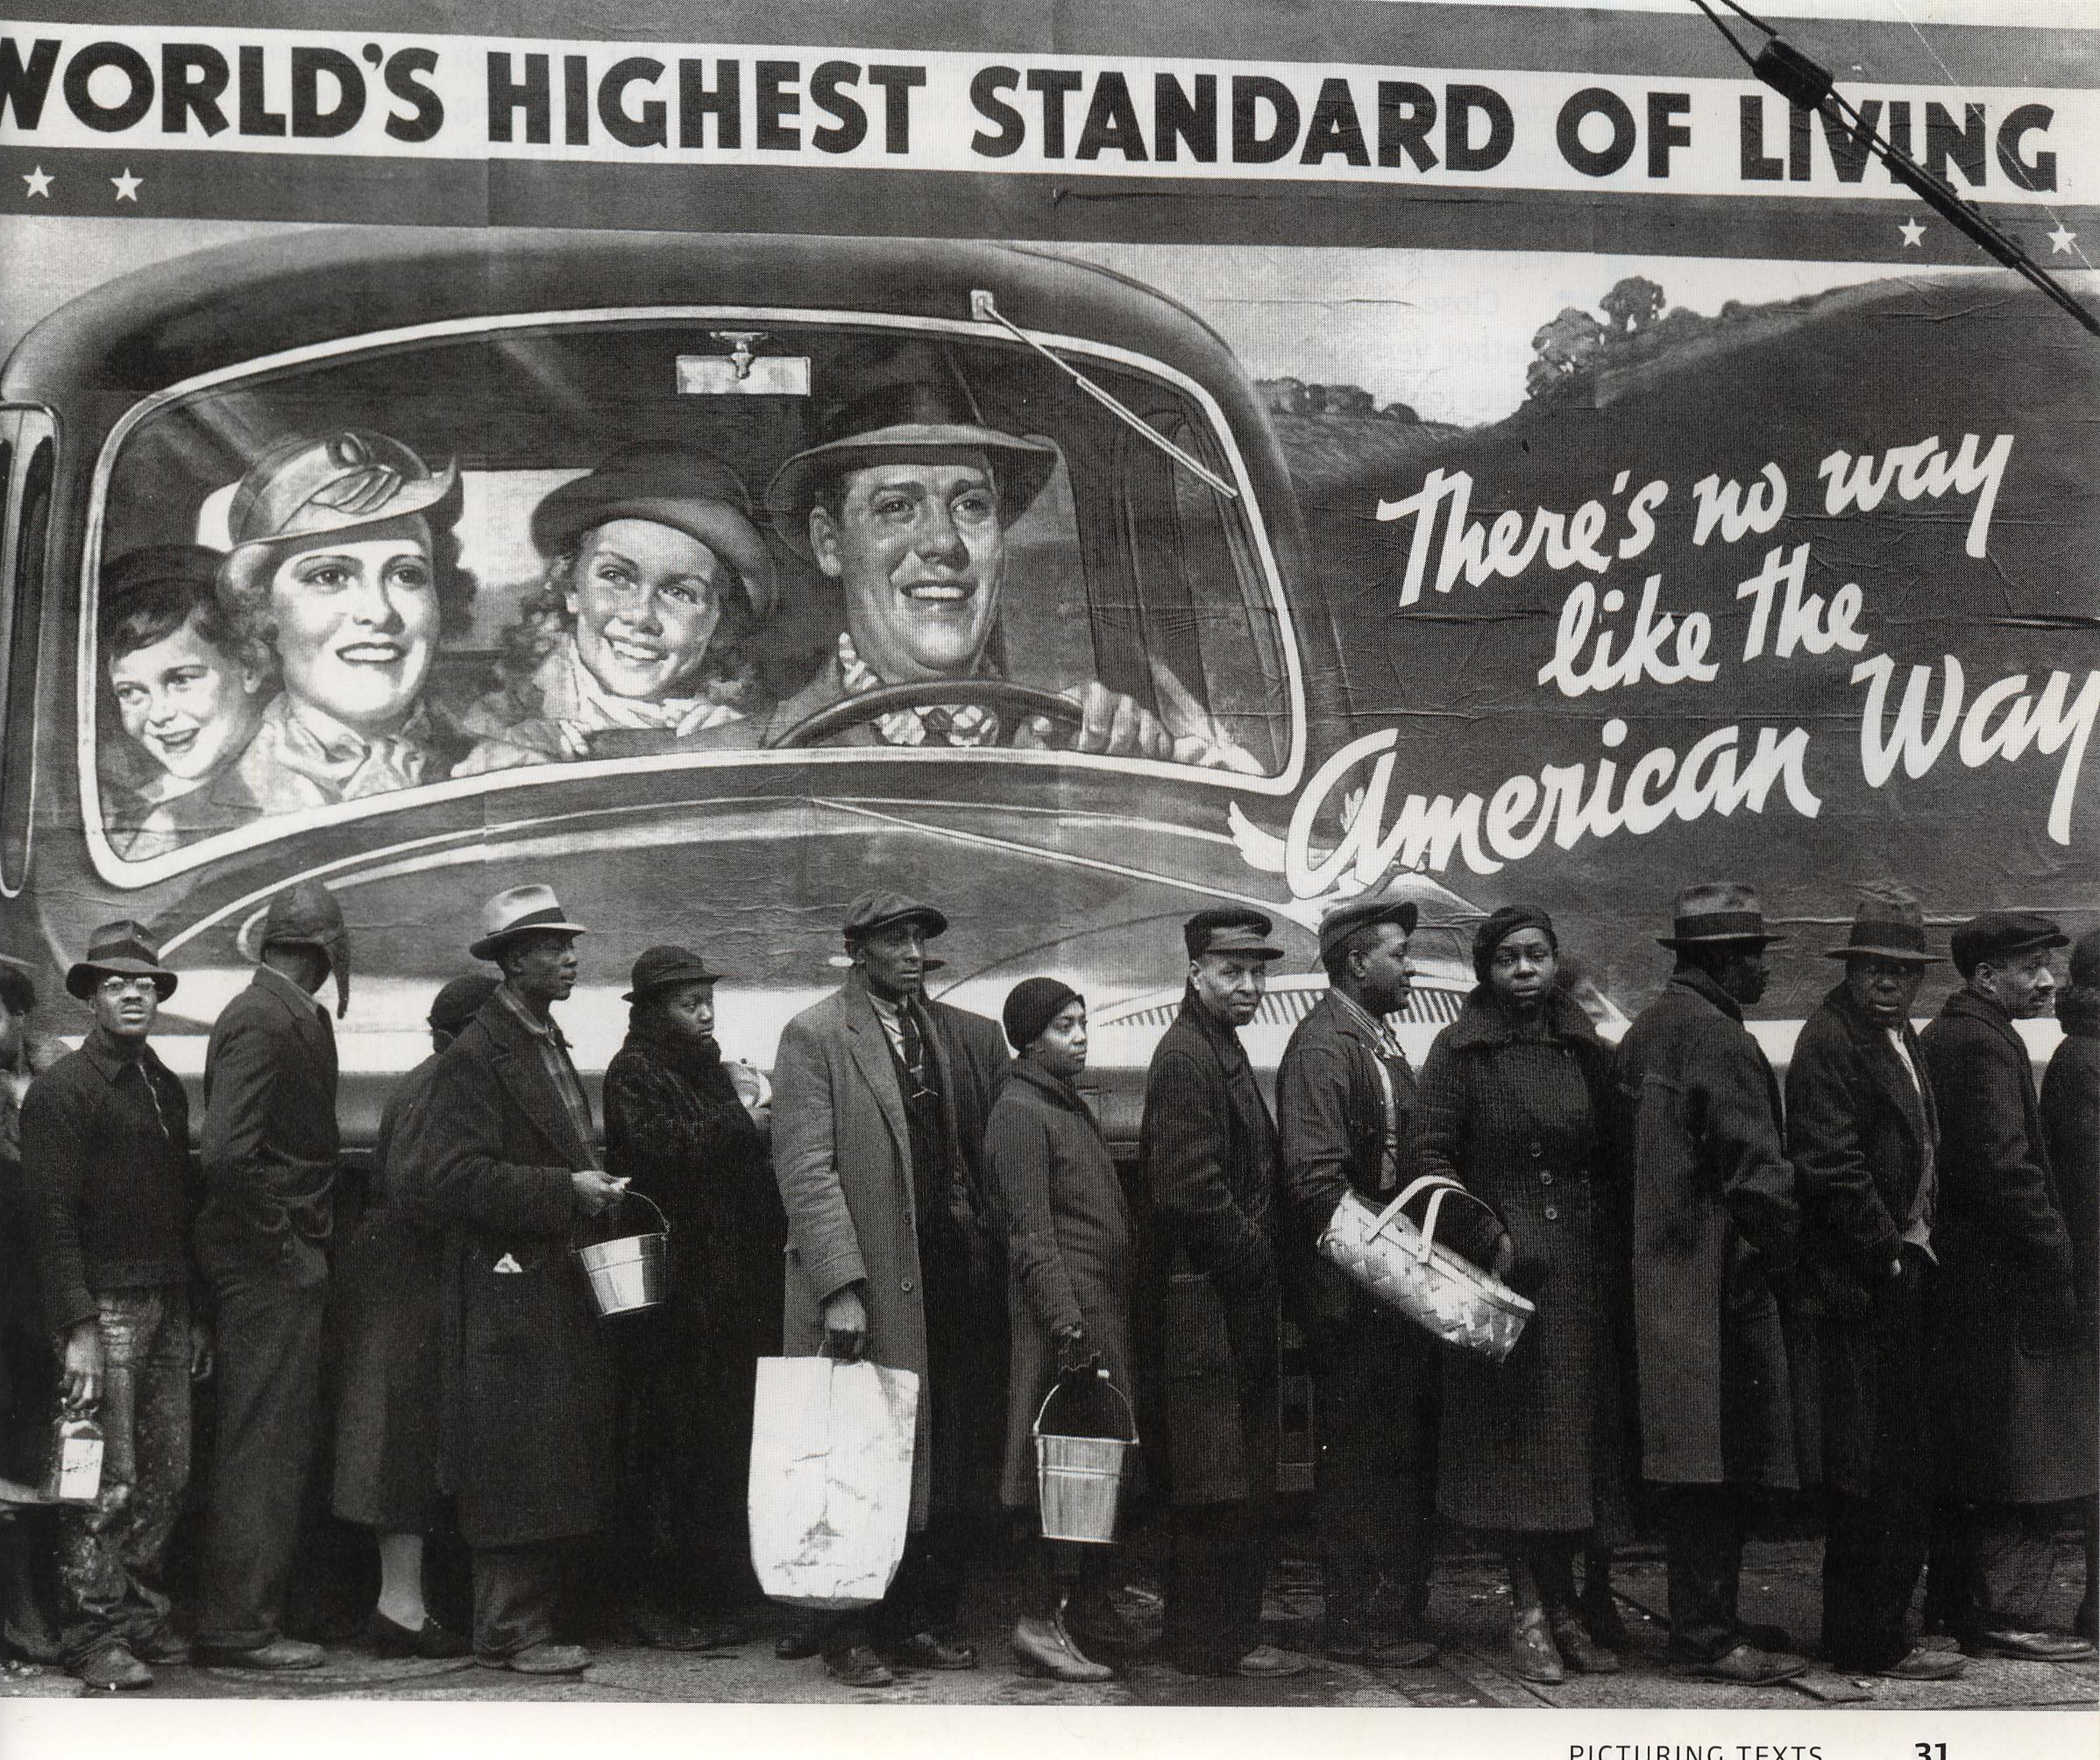 an introduction to the analysis of american dream Introduction in the last section the decline of the american dream is explained   time passed by, people started to care less about the religious meaning of.